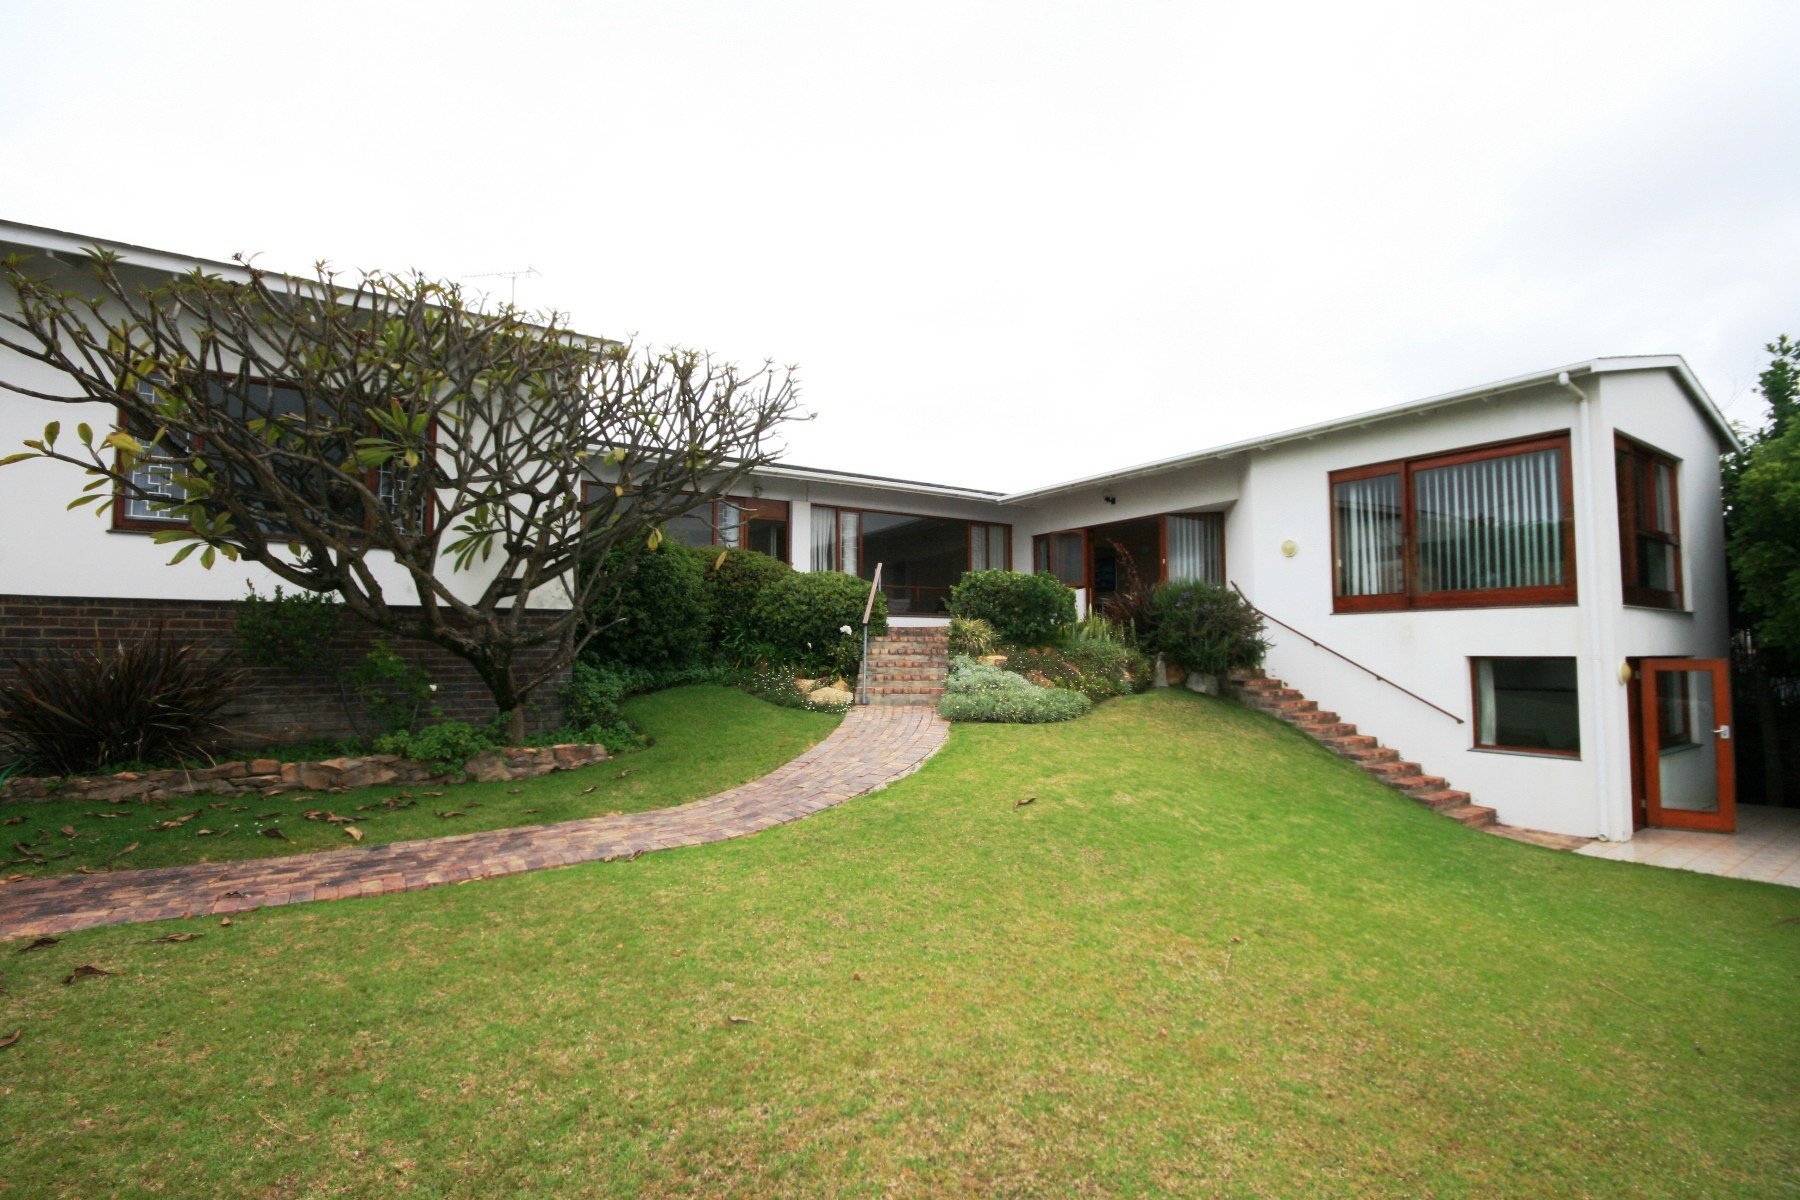 Single Family Home for Sale at Spectacular Point of View Plettenberg Bay, Western Cape, 6600 South Africa